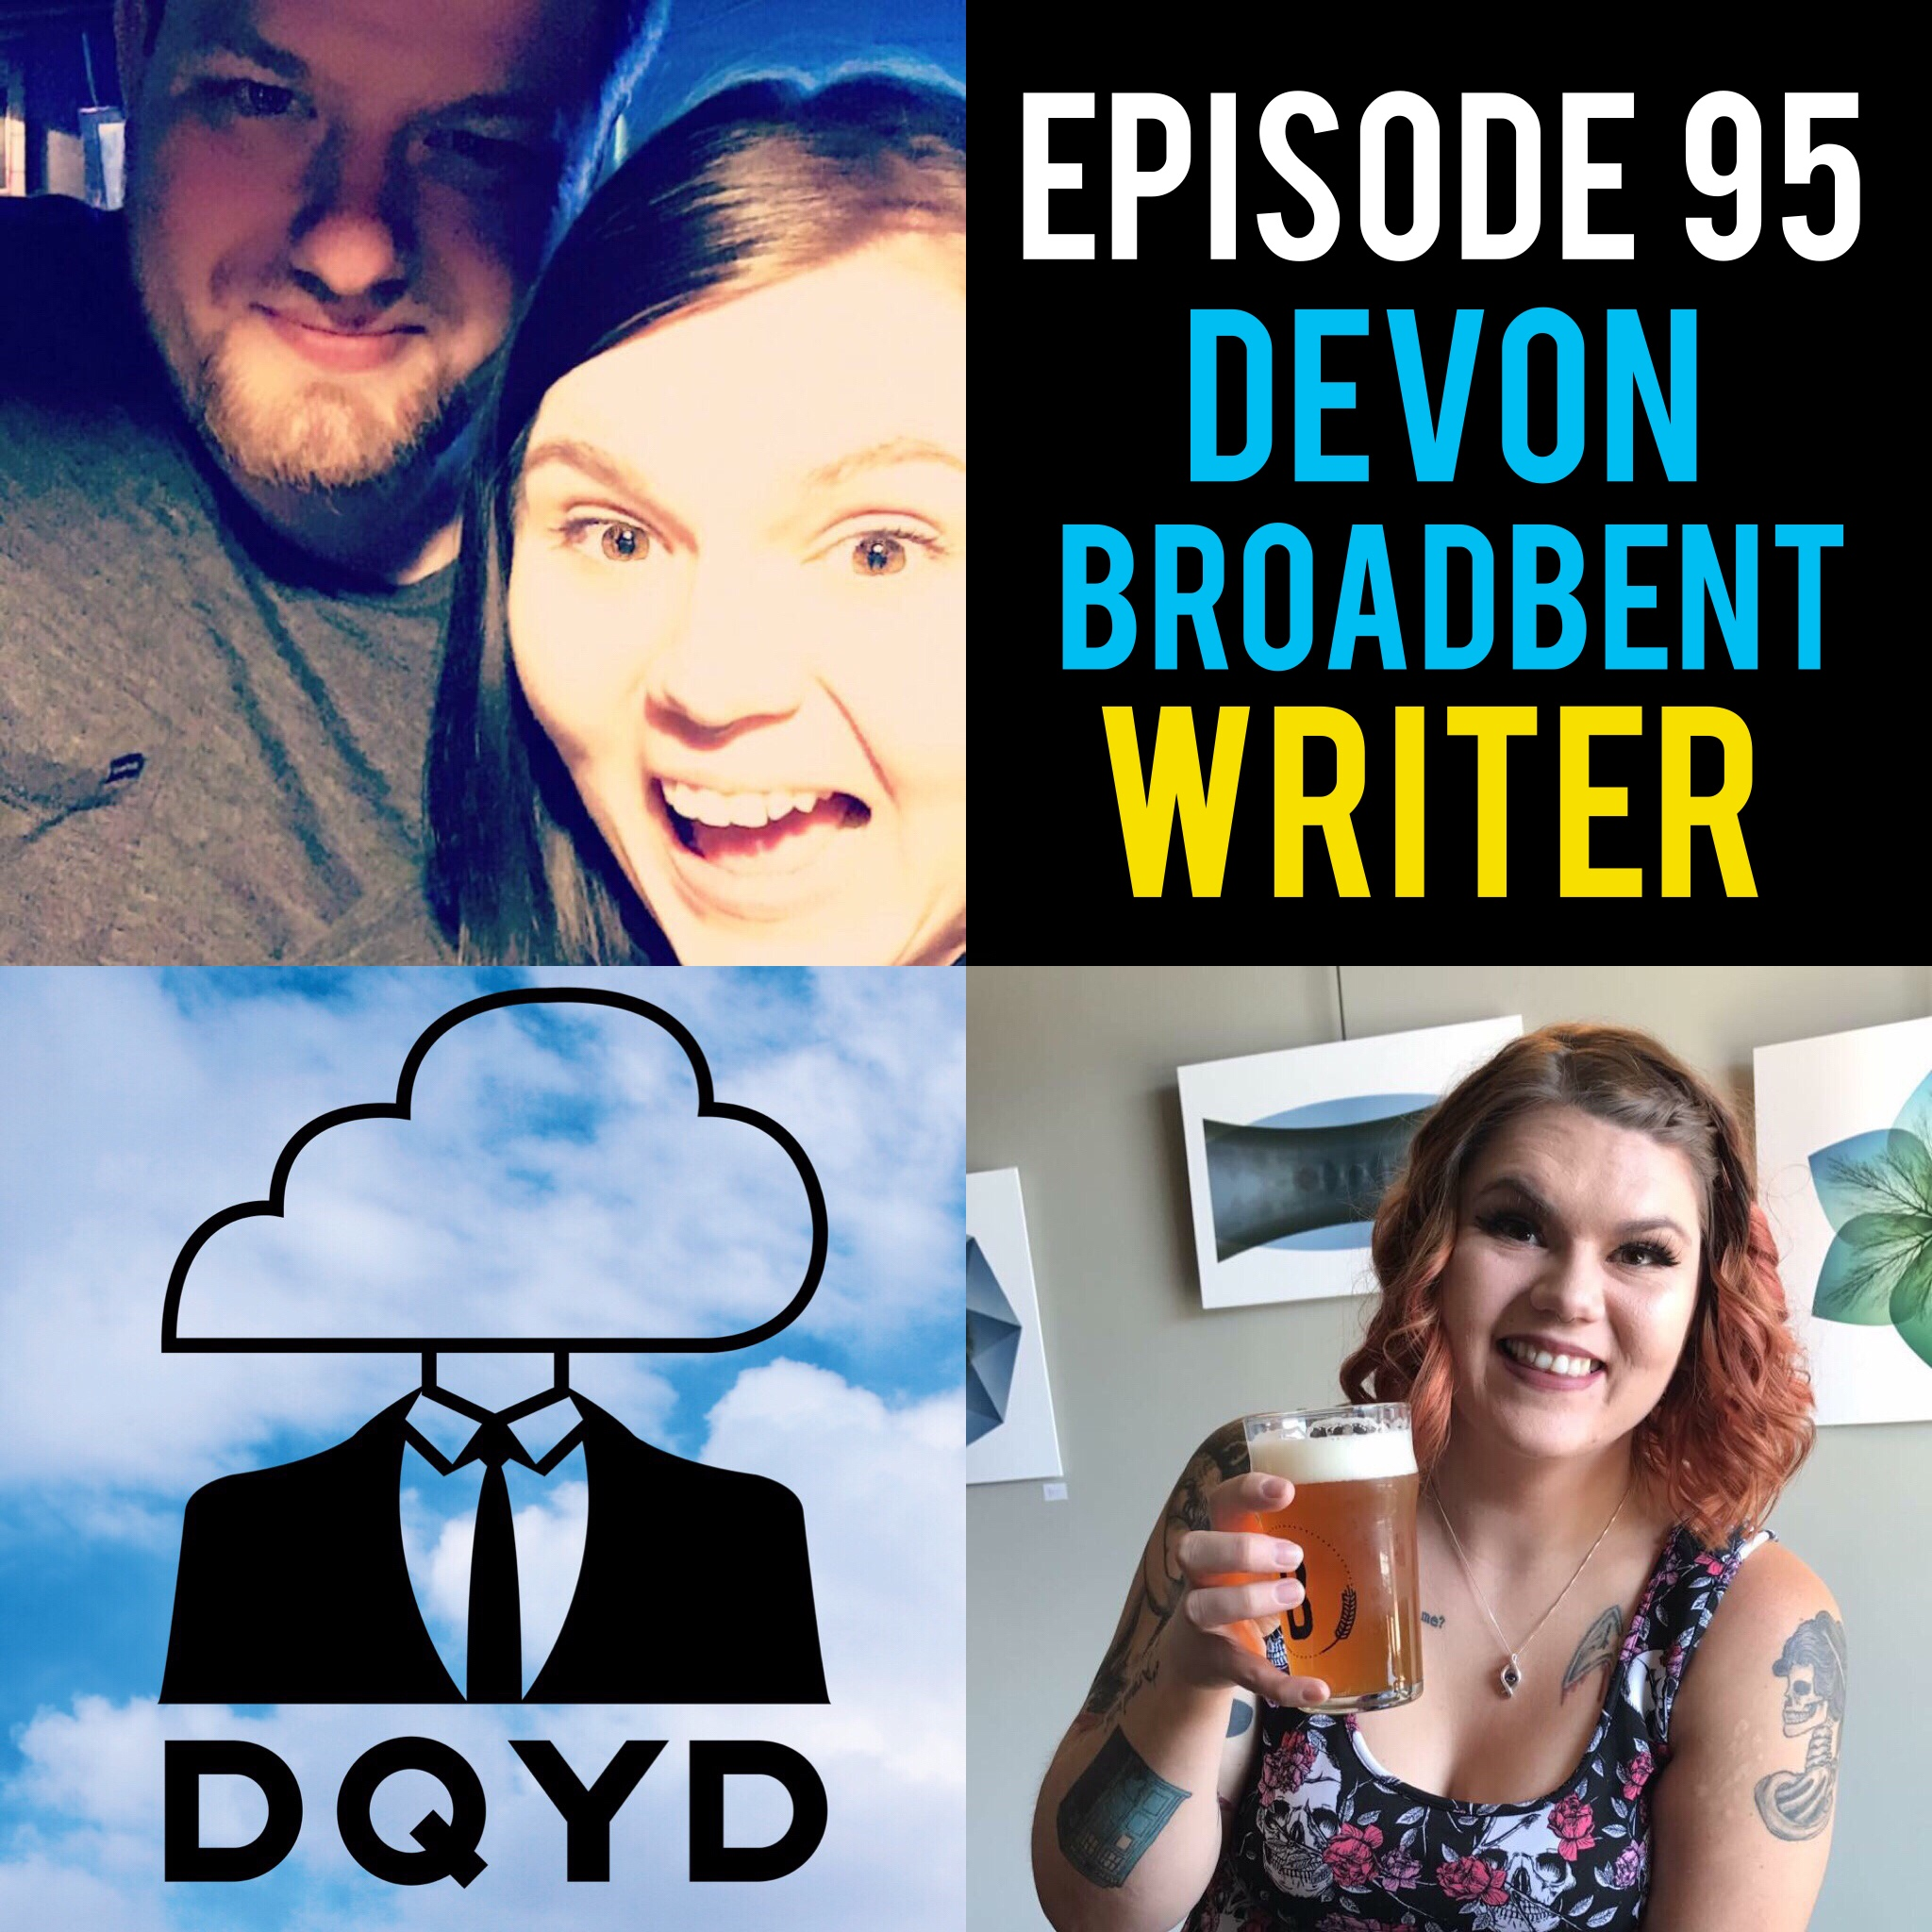 """Episode 95 with Writer: Devon Broadbent! The brains and awesome stories behind the DQYD blogs, Devon breaks down how she develops and builds her content. Blending personal experiences with research she crafts a consistently optimistic viewpoint on a weekly basis which can be found at dqydpodcast.com  Song of the week is """"A Minute"""" by Timan. Check em out! https://soundcloud.com/joshwillmakeit/phases?utm_source=soundcloud&utm_campaign=share&utm_medium=twitter"""